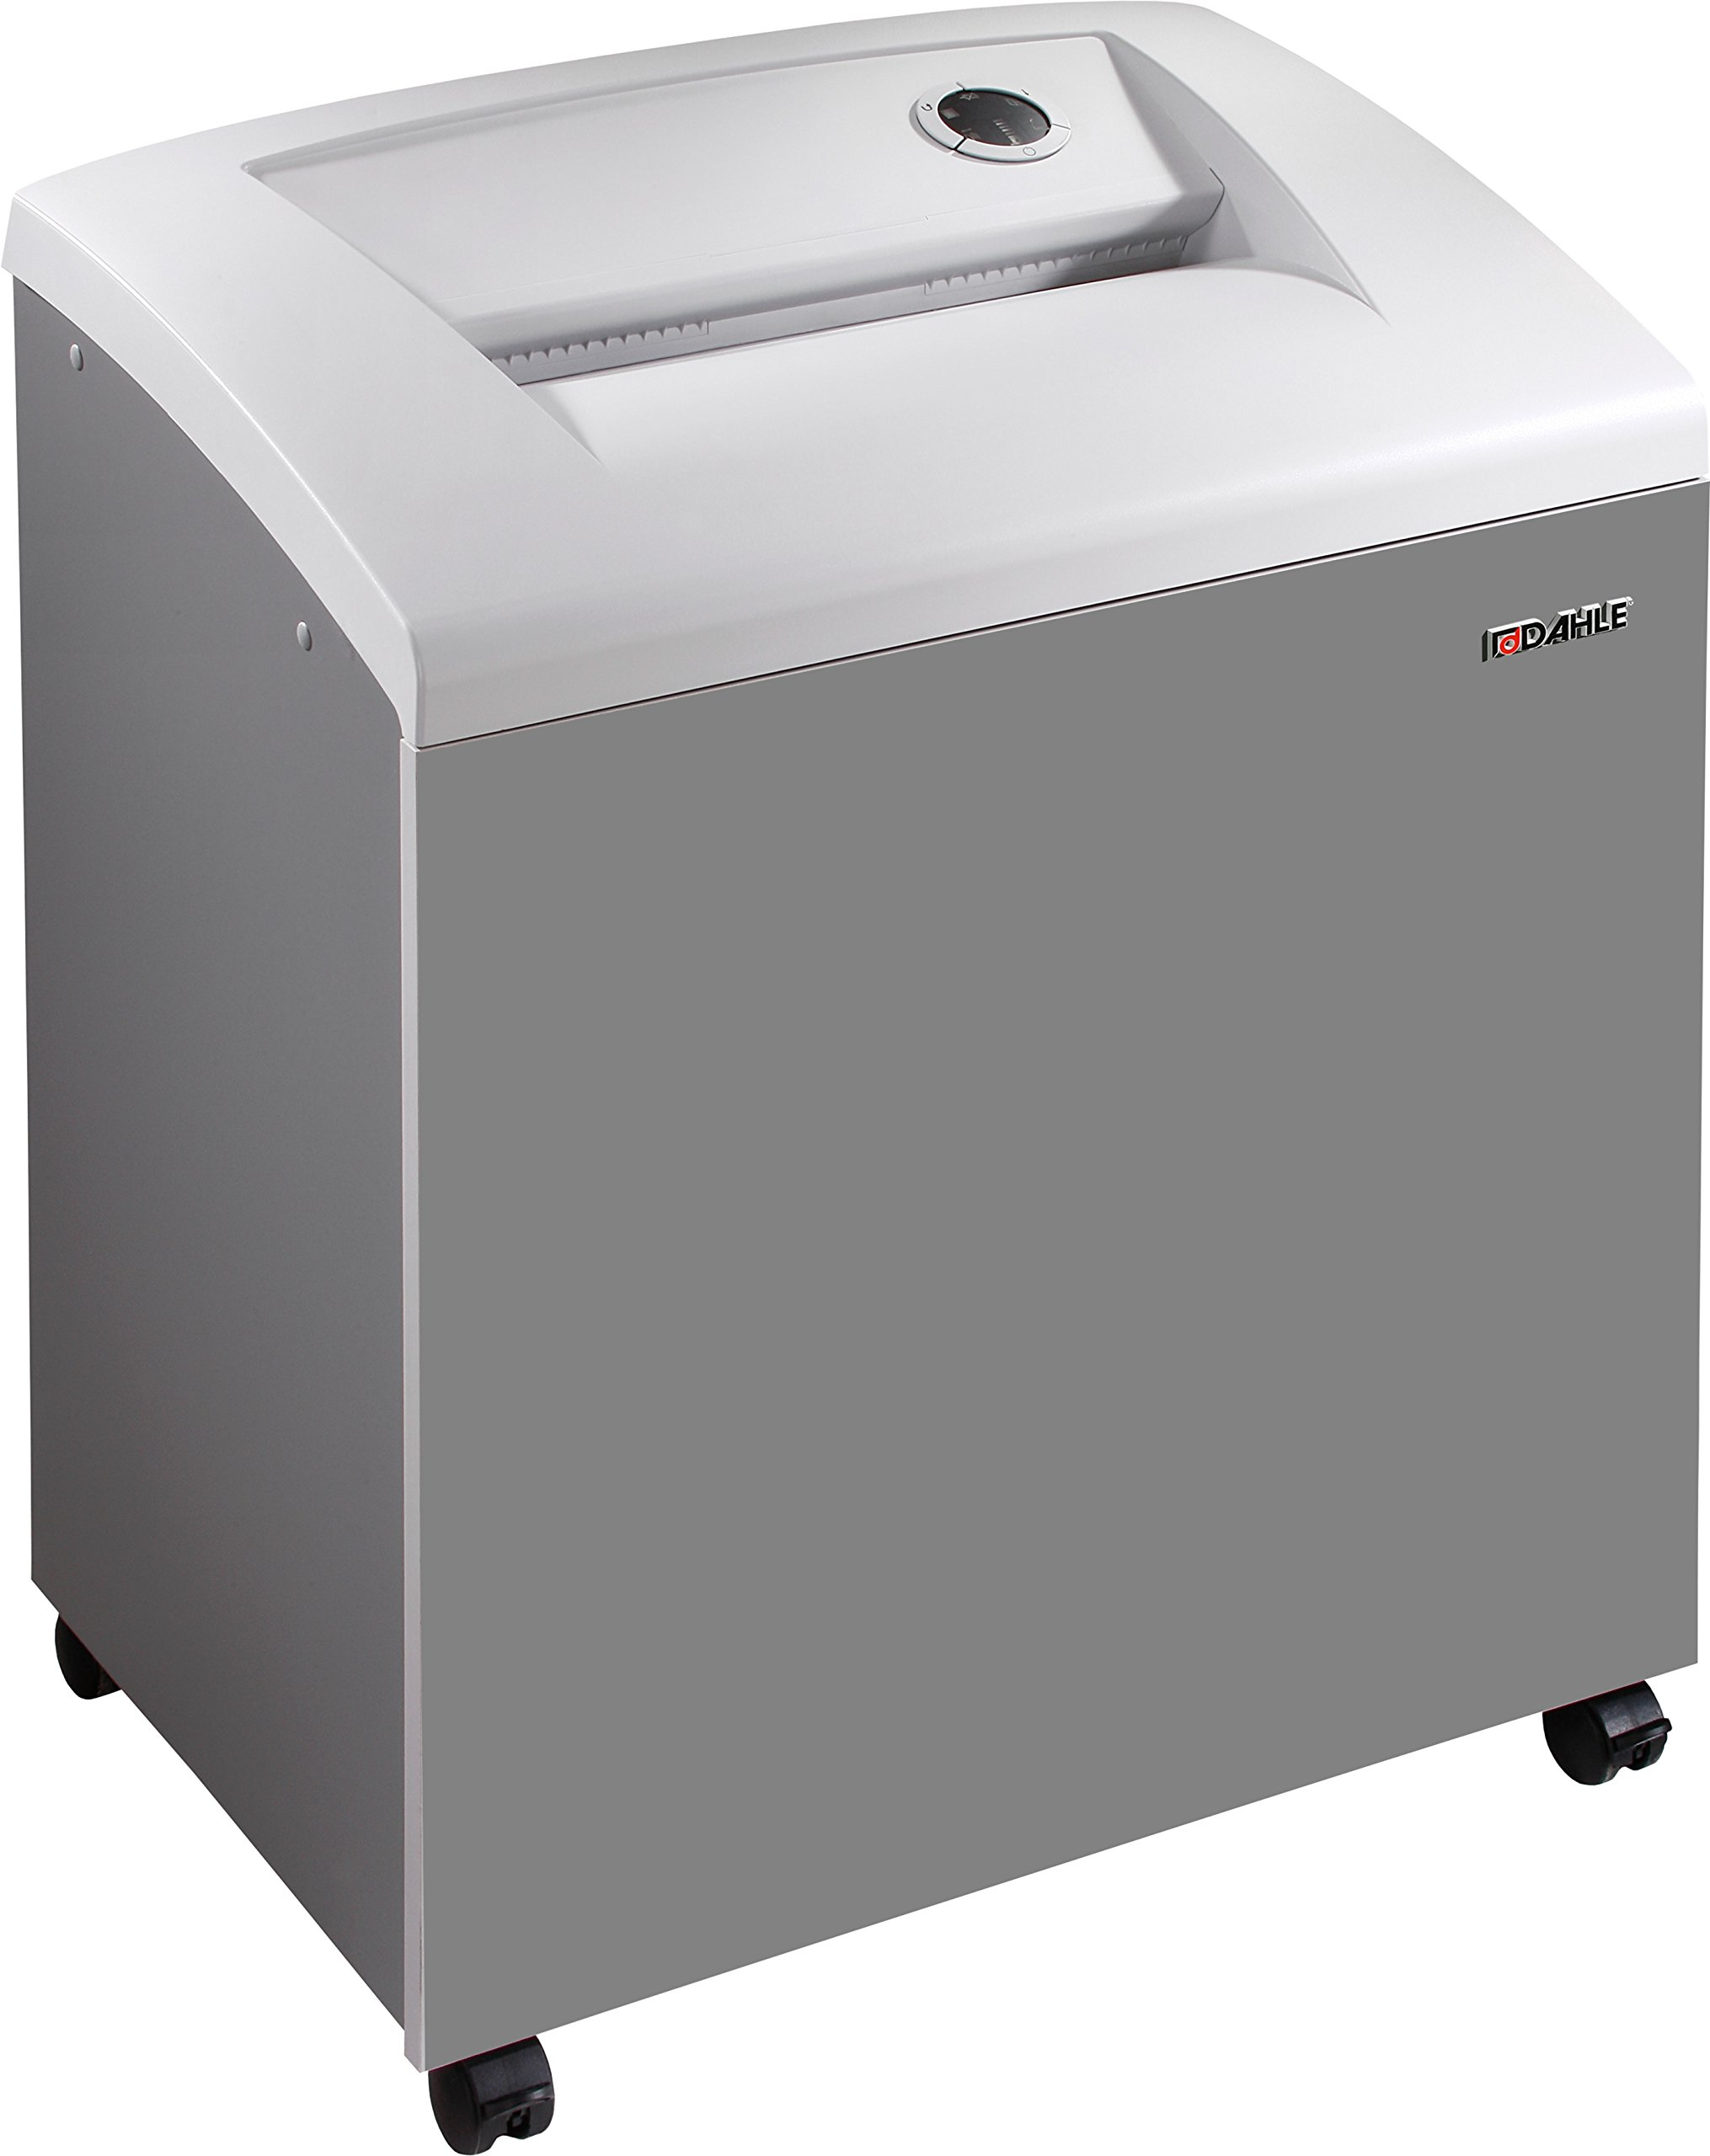 Dahle 40530 Paper Shredder w/Automatic Oiler, SmartPower, Jam Protection, Extreme Cross Cut, Security Level P-6, 10 Sheet Max, 3-5 Users